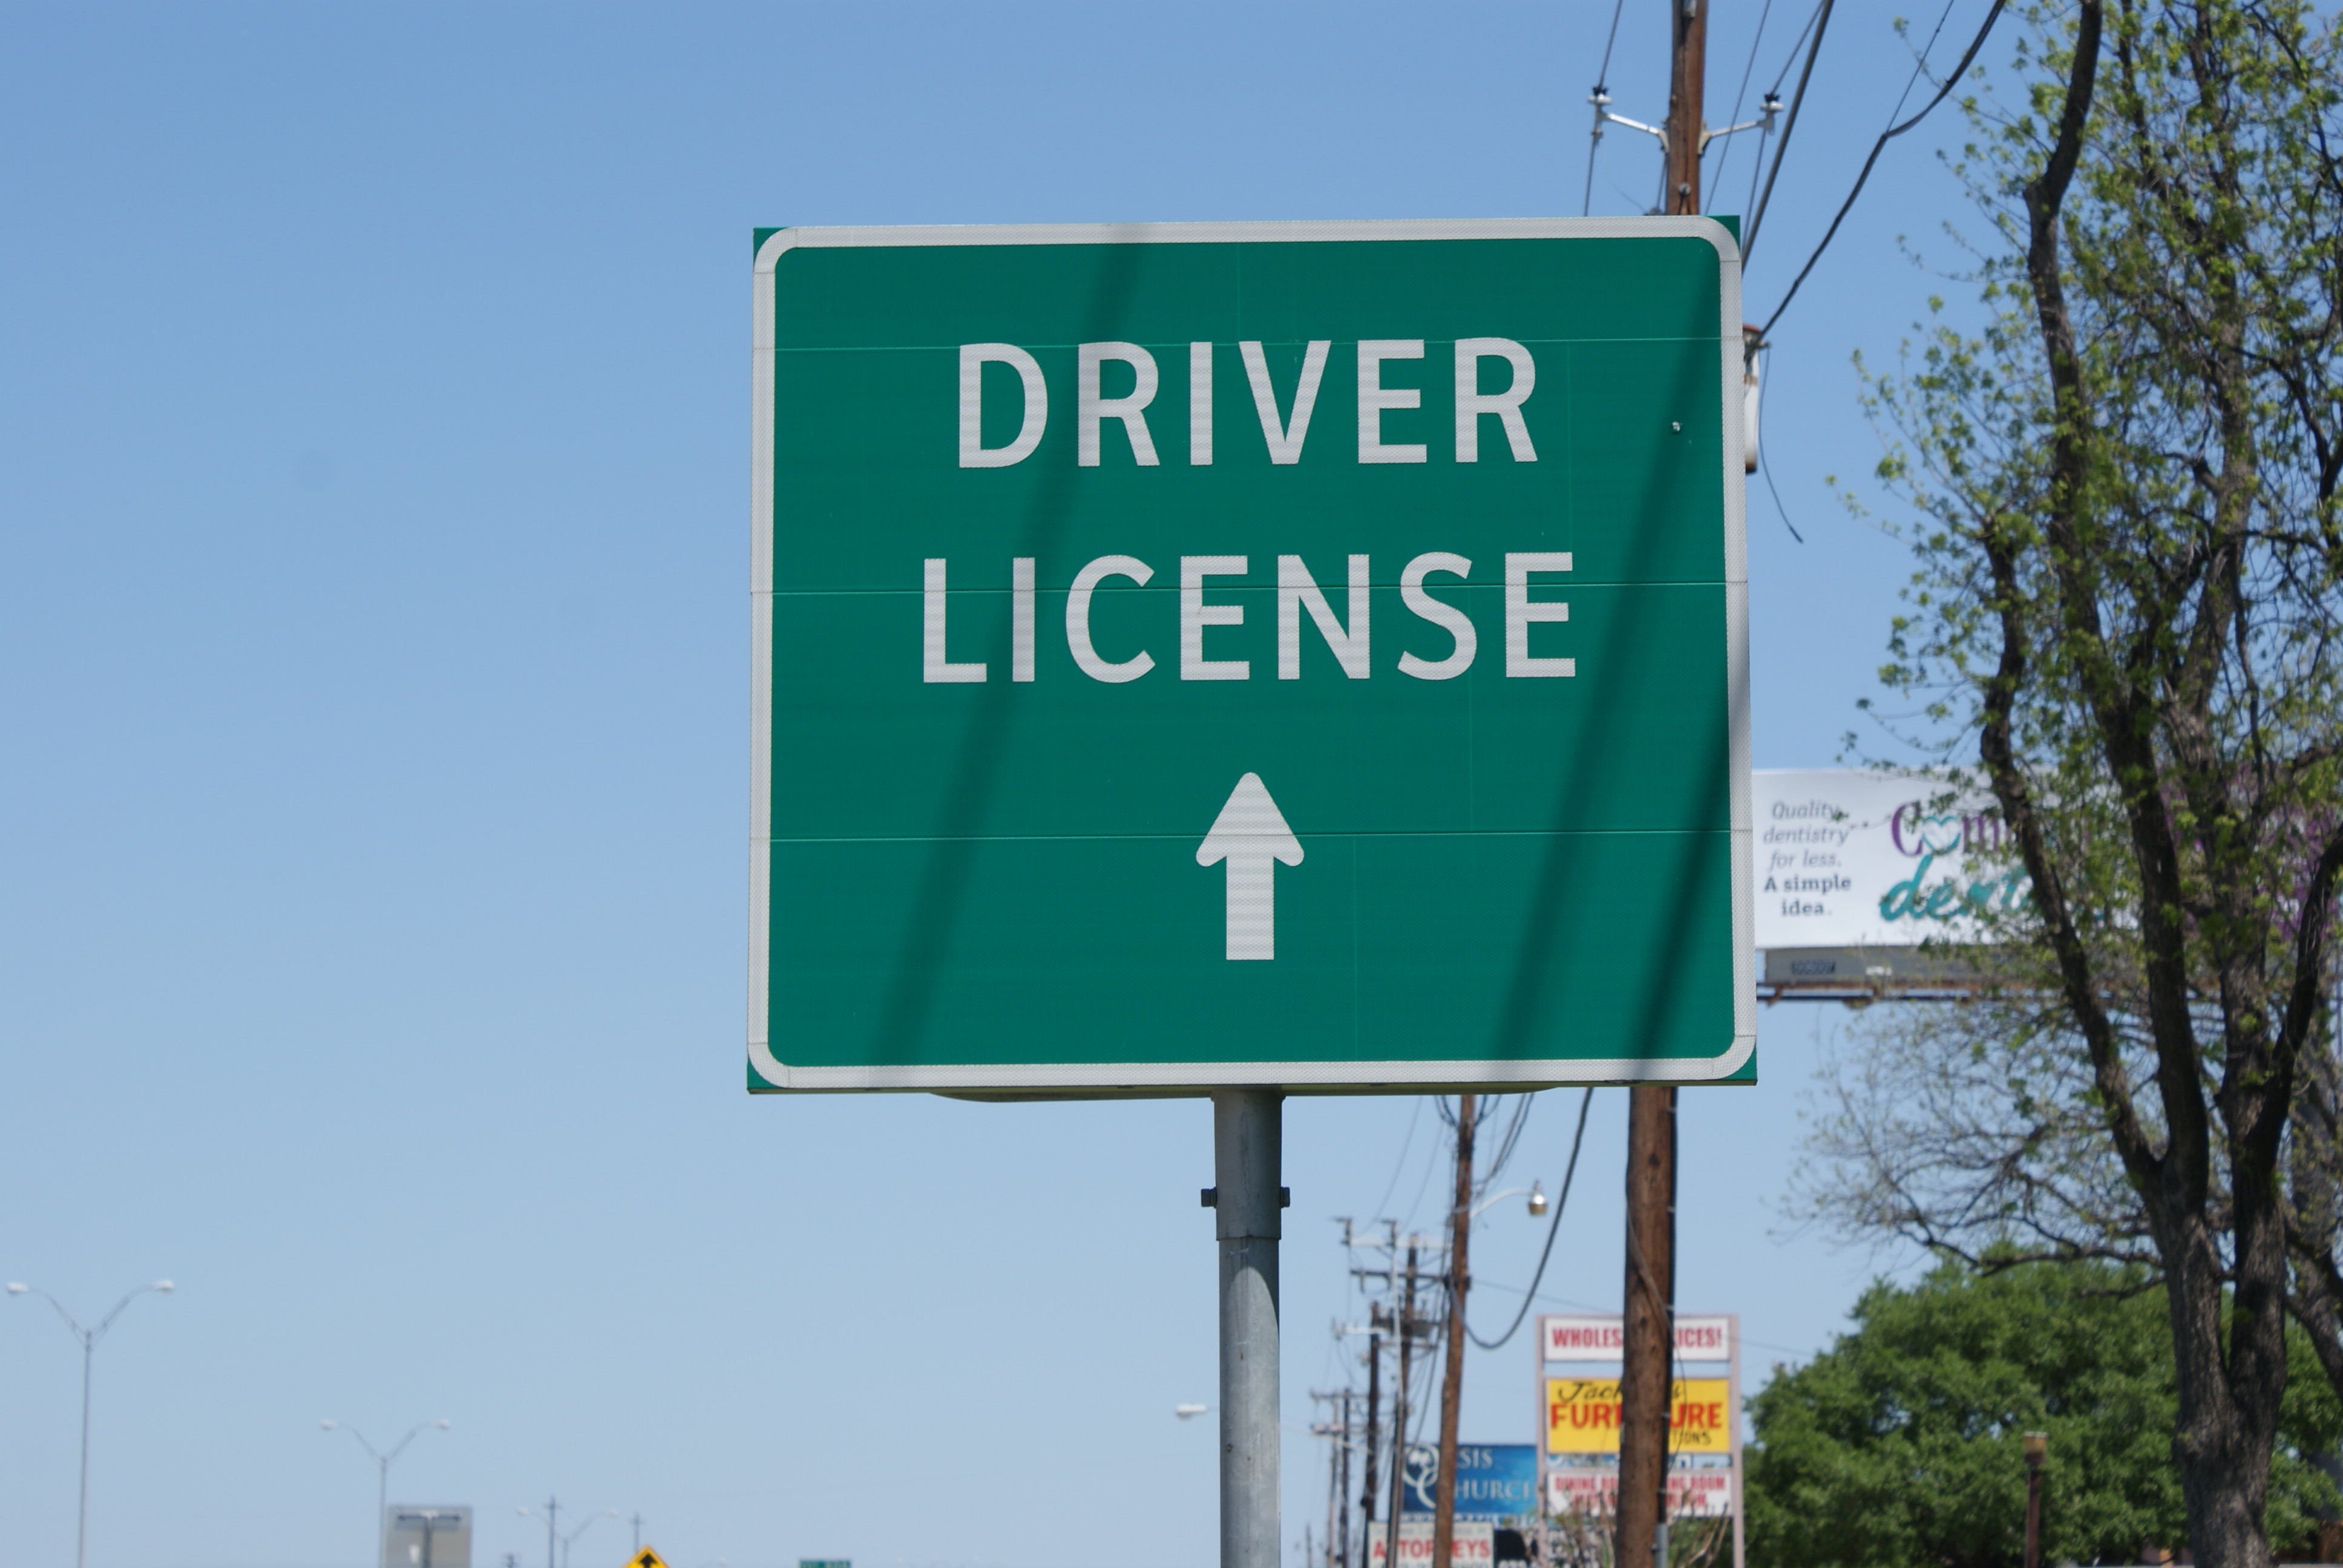 occupational drivers license denton county